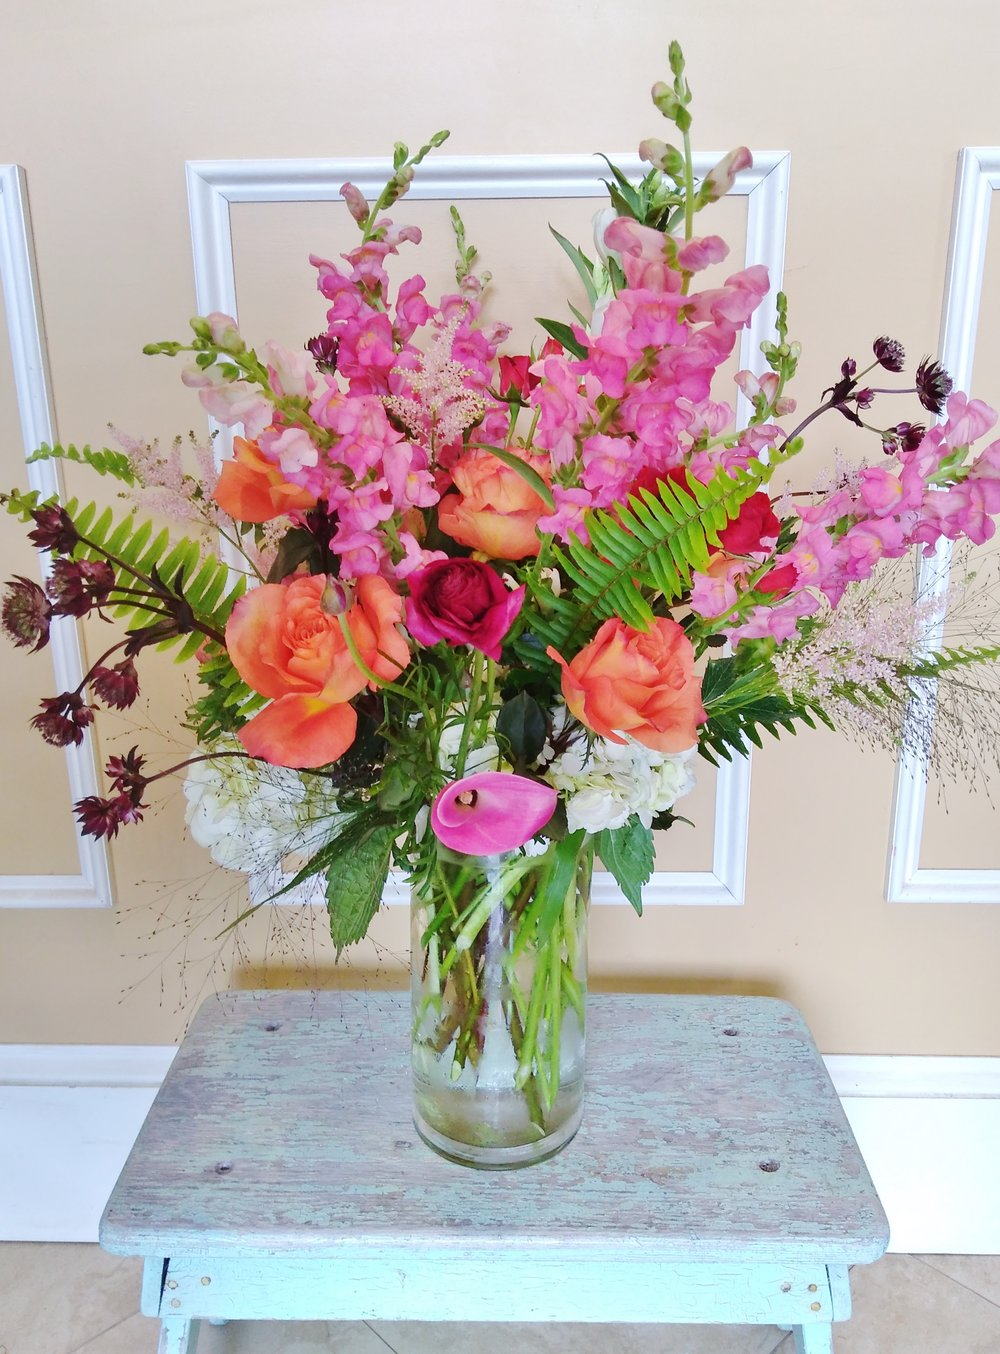 A10 $125-$200 Tall classical style vase arrangement. $175 as shown.